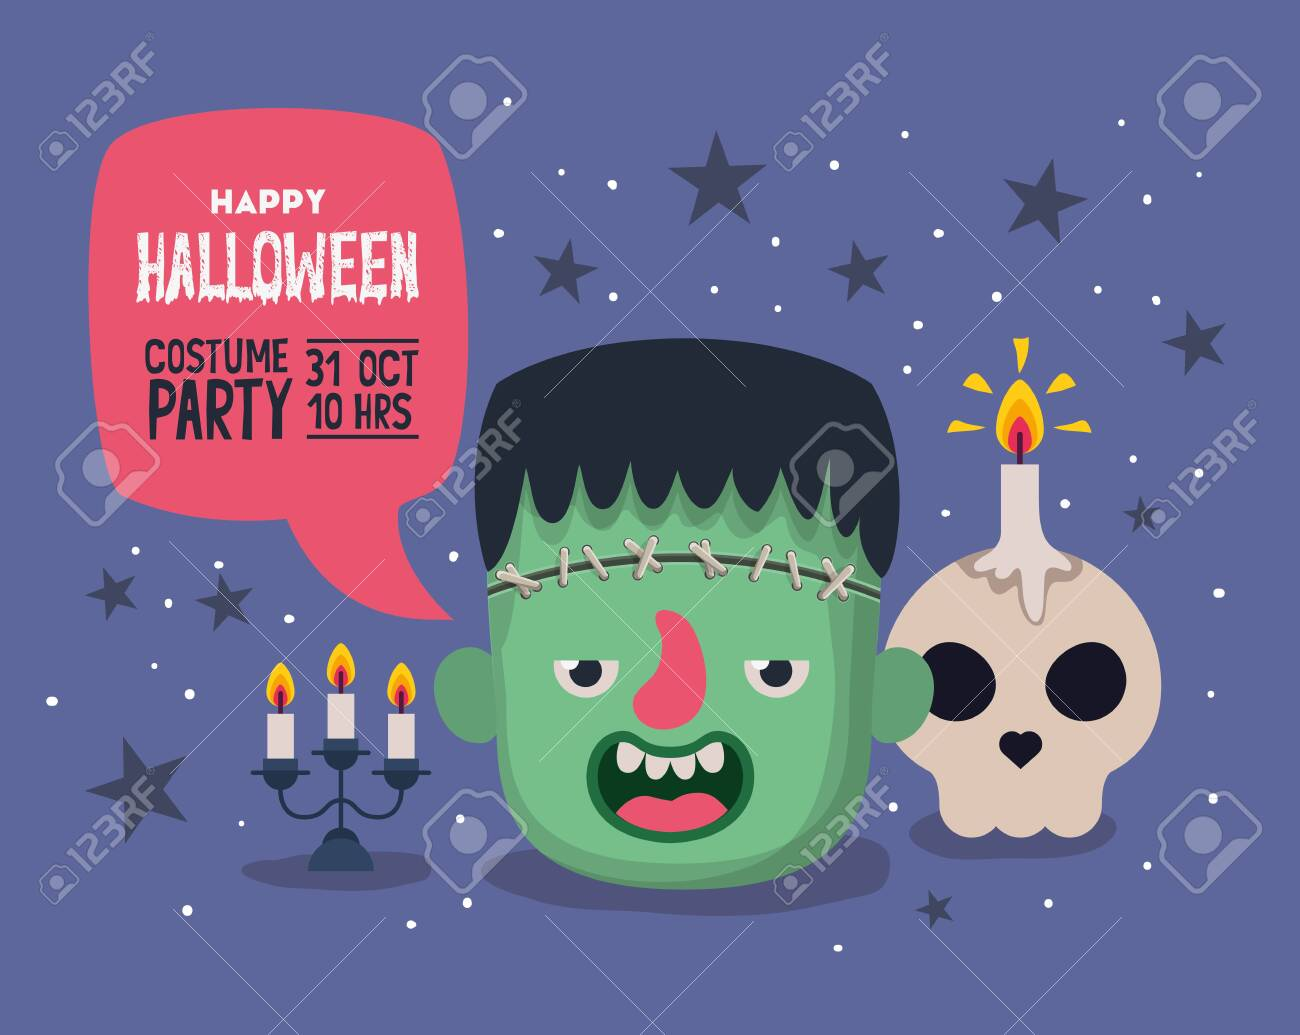 Halloween invitation card with cartoon frankestein head and skull candle over purple background, colorful design, vector illustration - 133763256